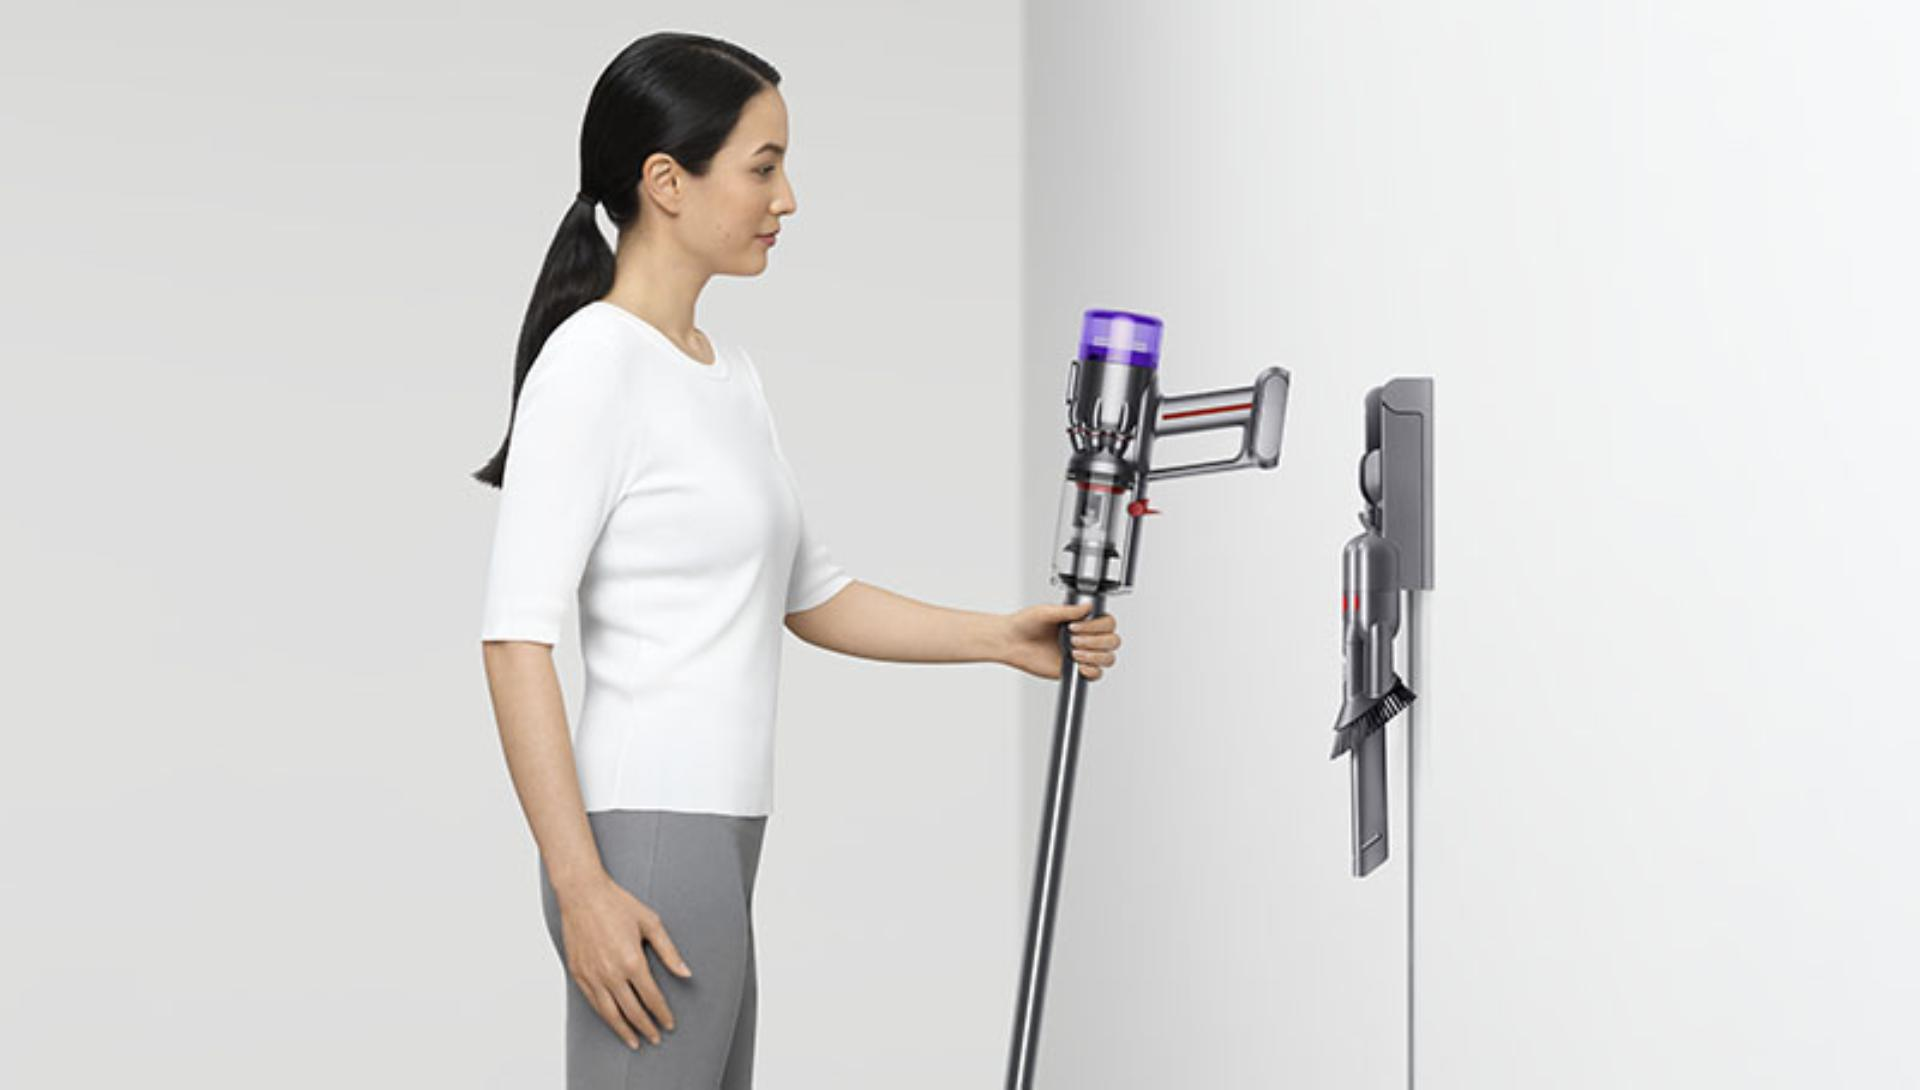 Woman putting a Dyson Micro 1.5kg vacuum into a wall dock